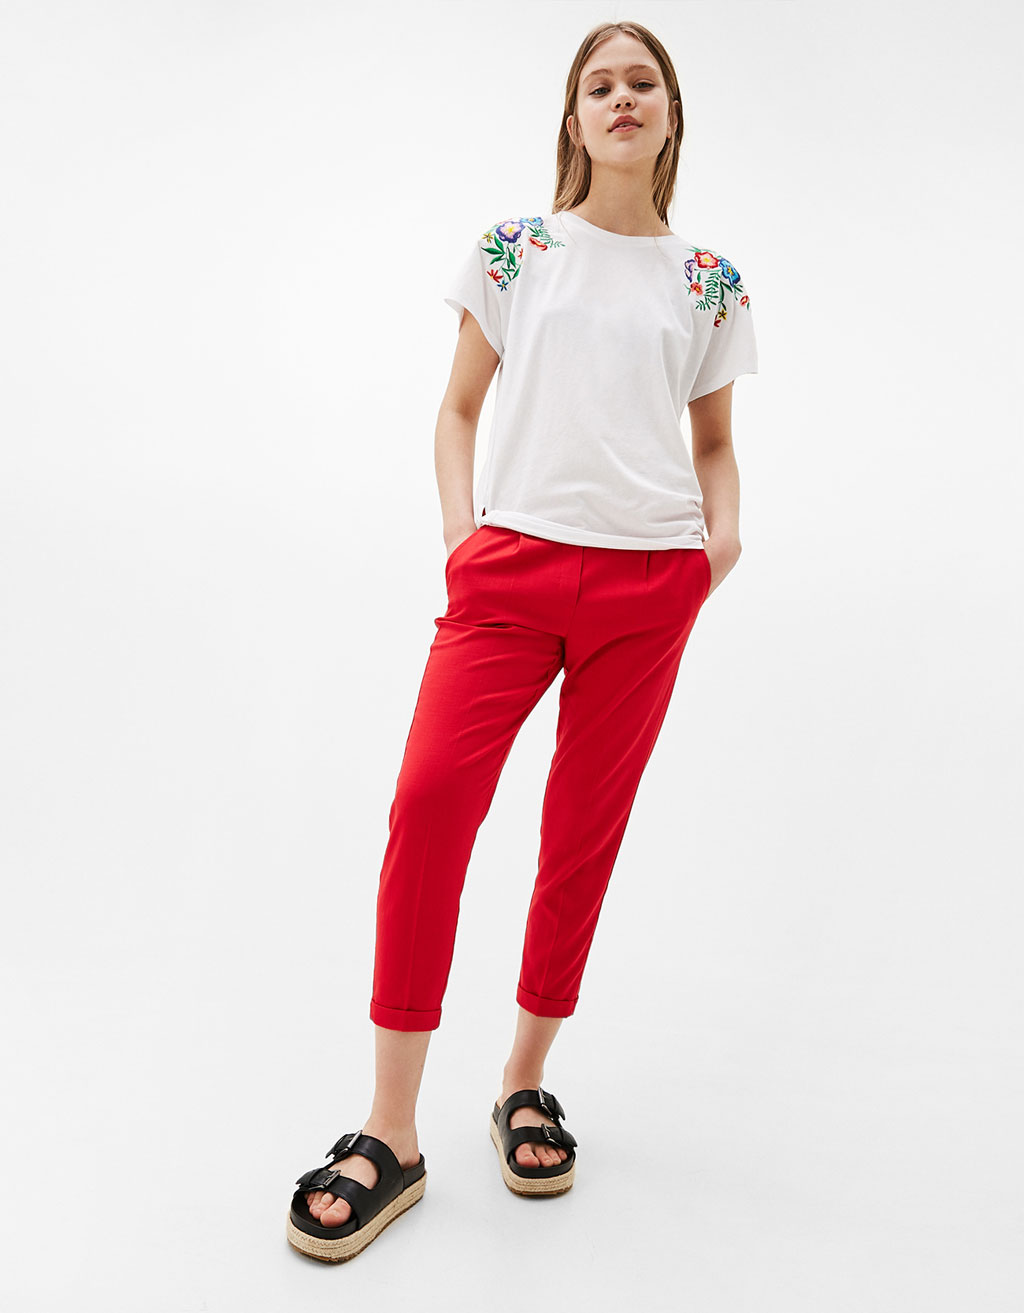 T-shirt with side knots and floral embroidery